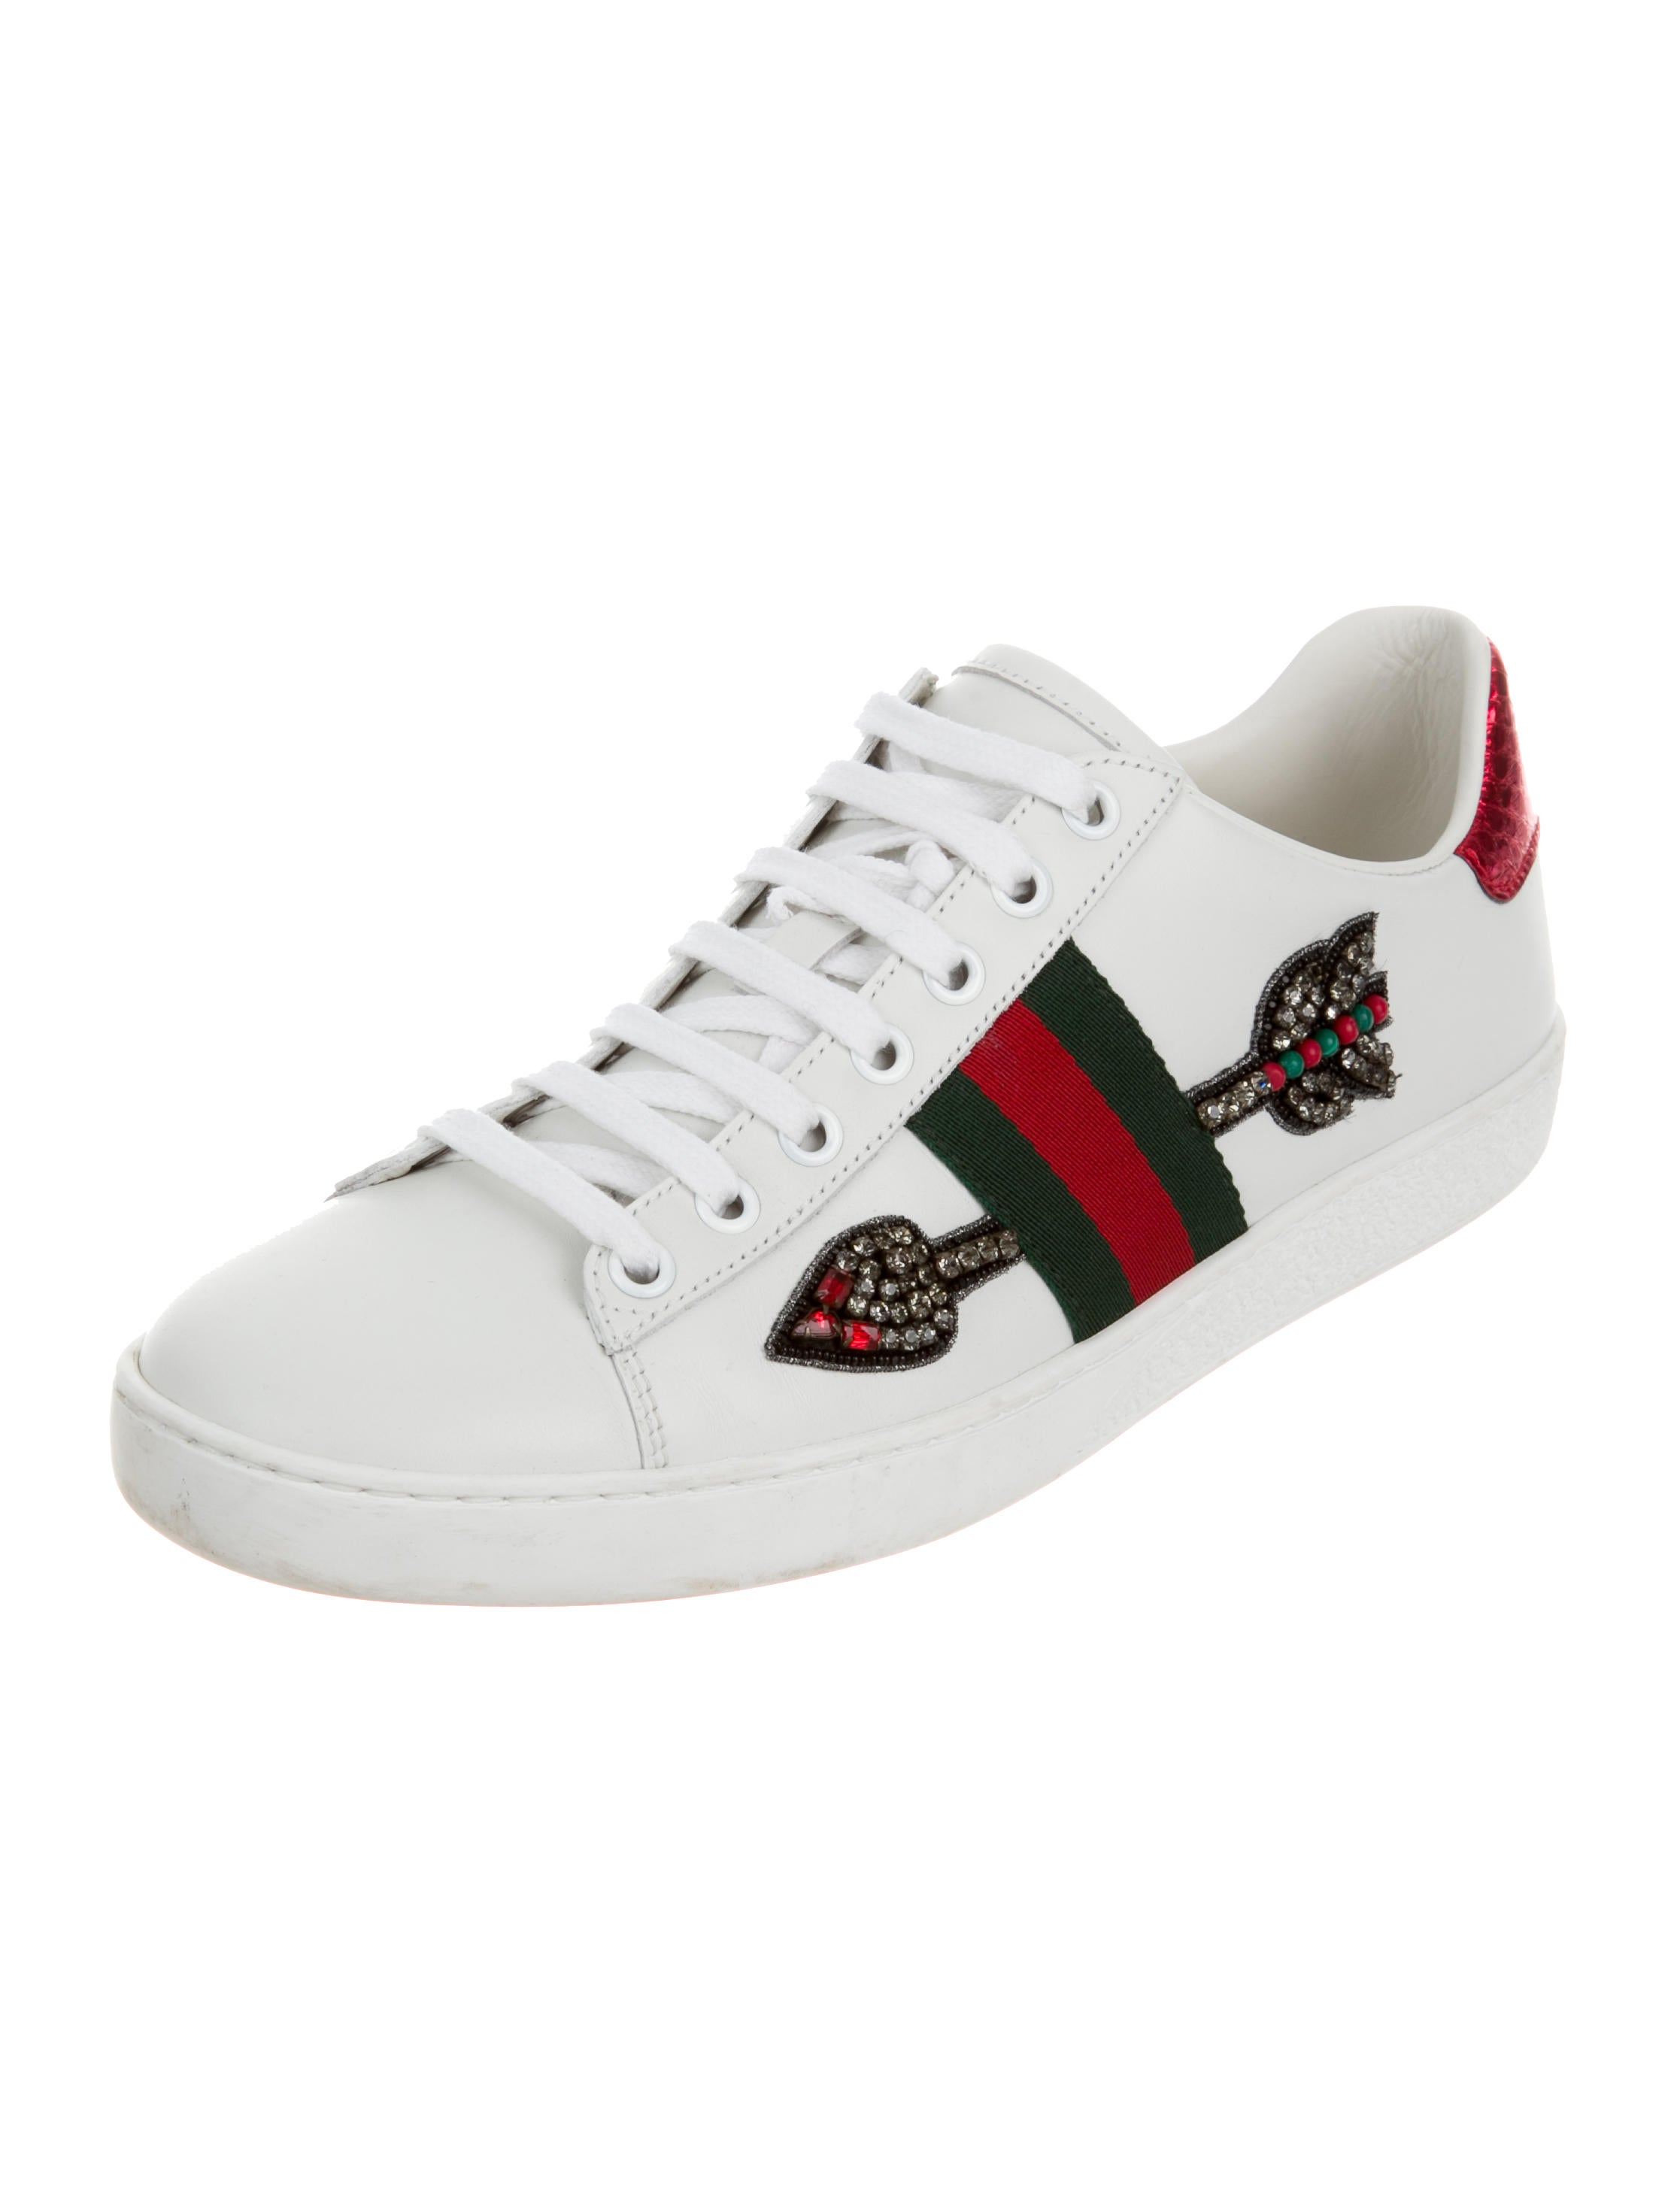 gucci 2017 ace arrow sneakers shoes guc137652 the. Black Bedroom Furniture Sets. Home Design Ideas